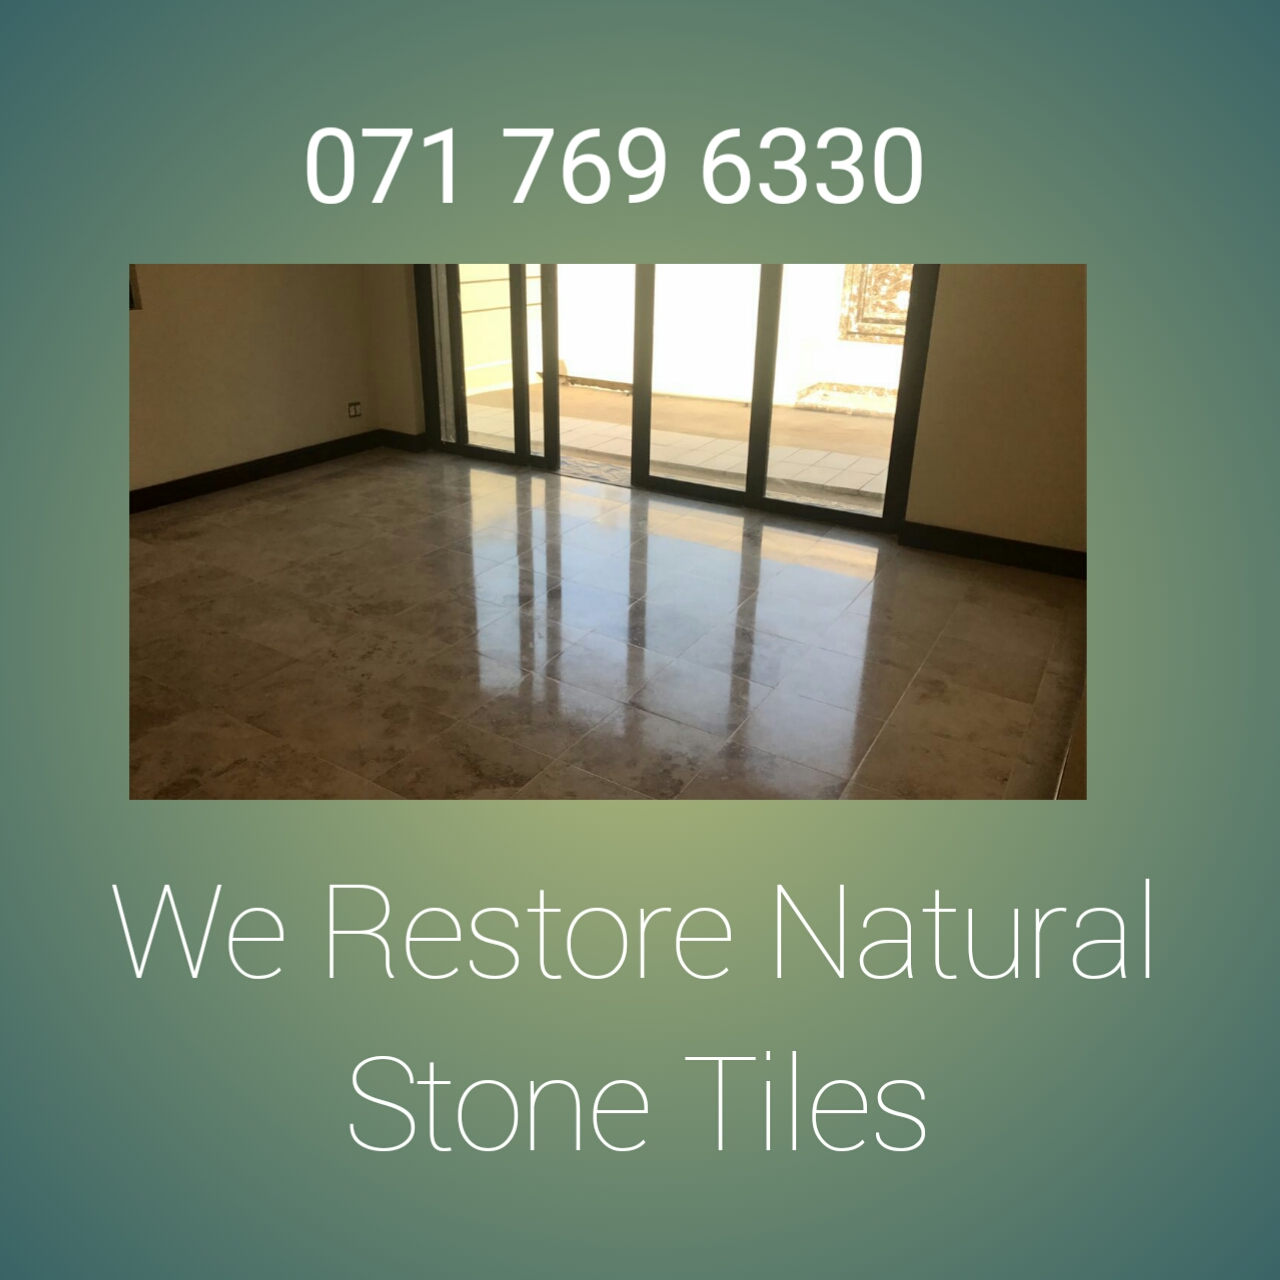 MARBLE AND TRAVERTINE POLISHING, ALL NATURAL STONE RESTORATION